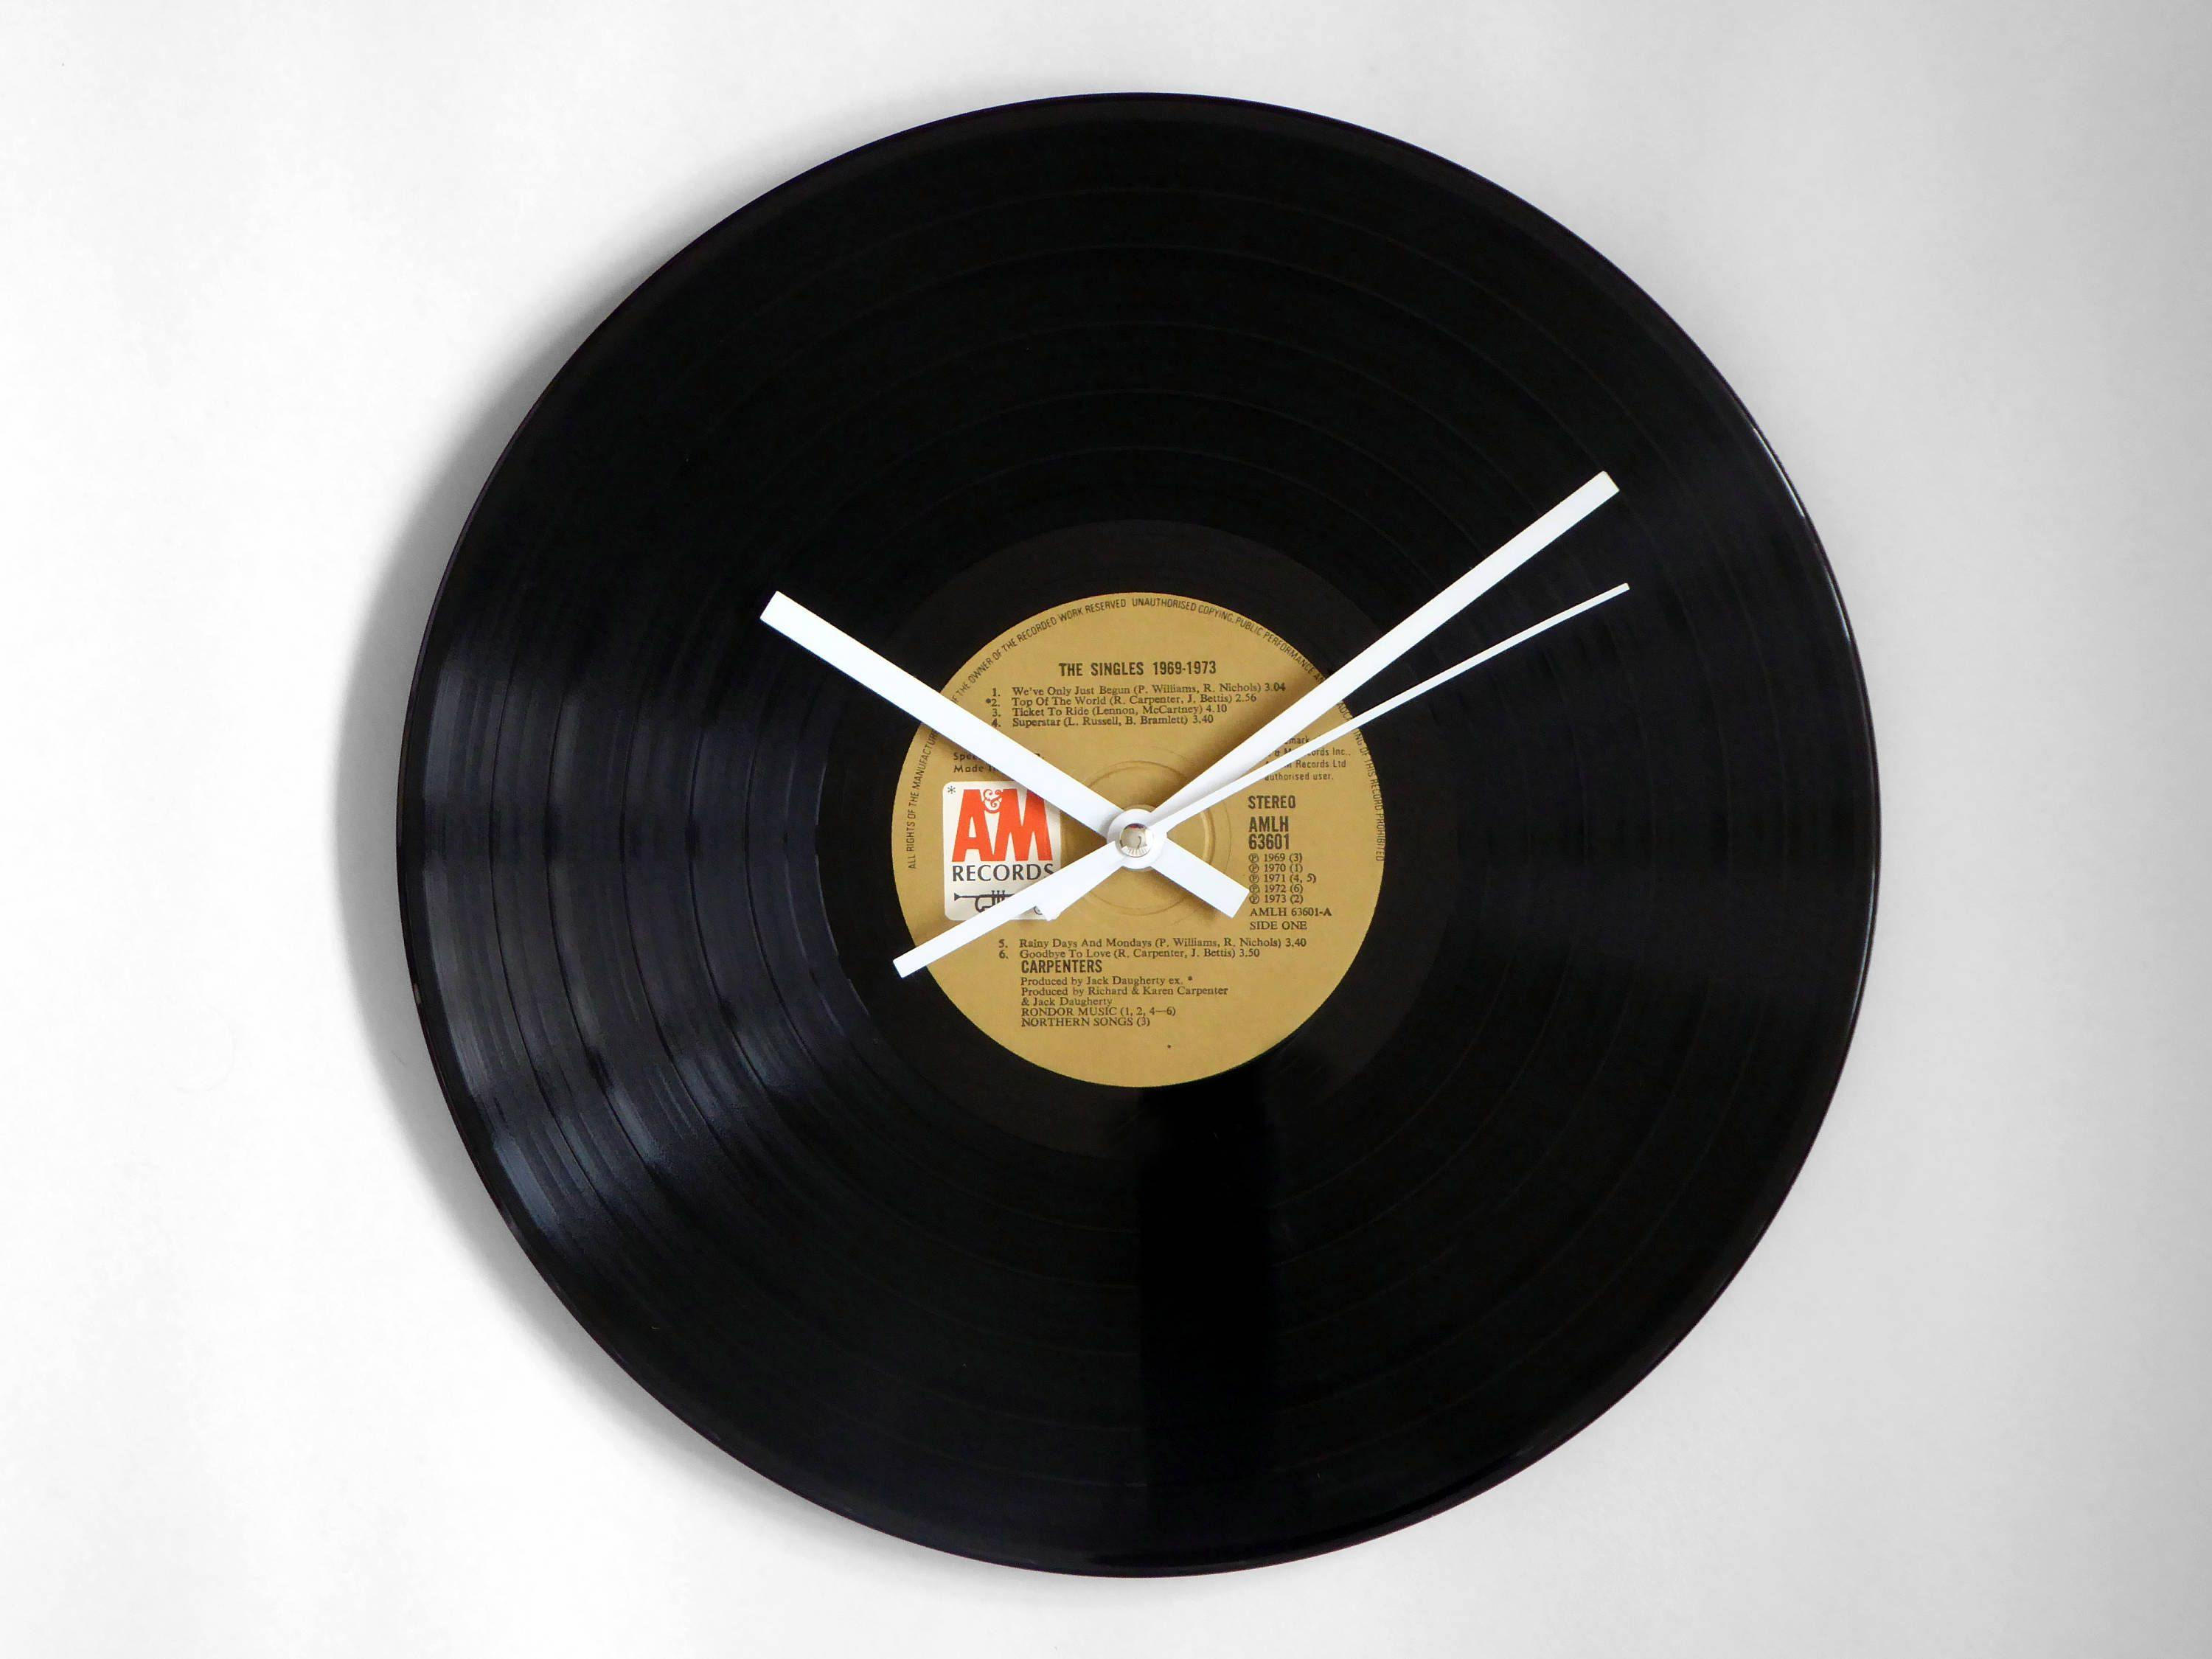 Carpenters The Singles Vinyl Record Wall Clock Vinyl Records Record Wall Vinyl